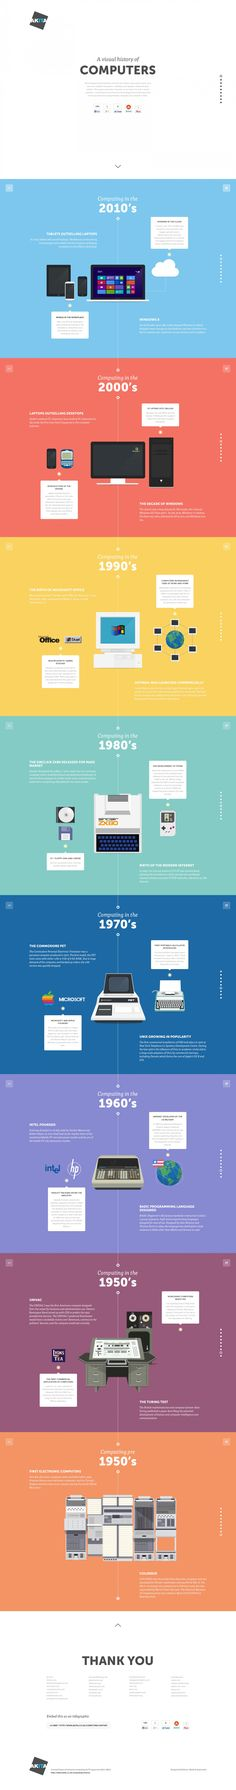 A visual history of computers [JPG] Infographic